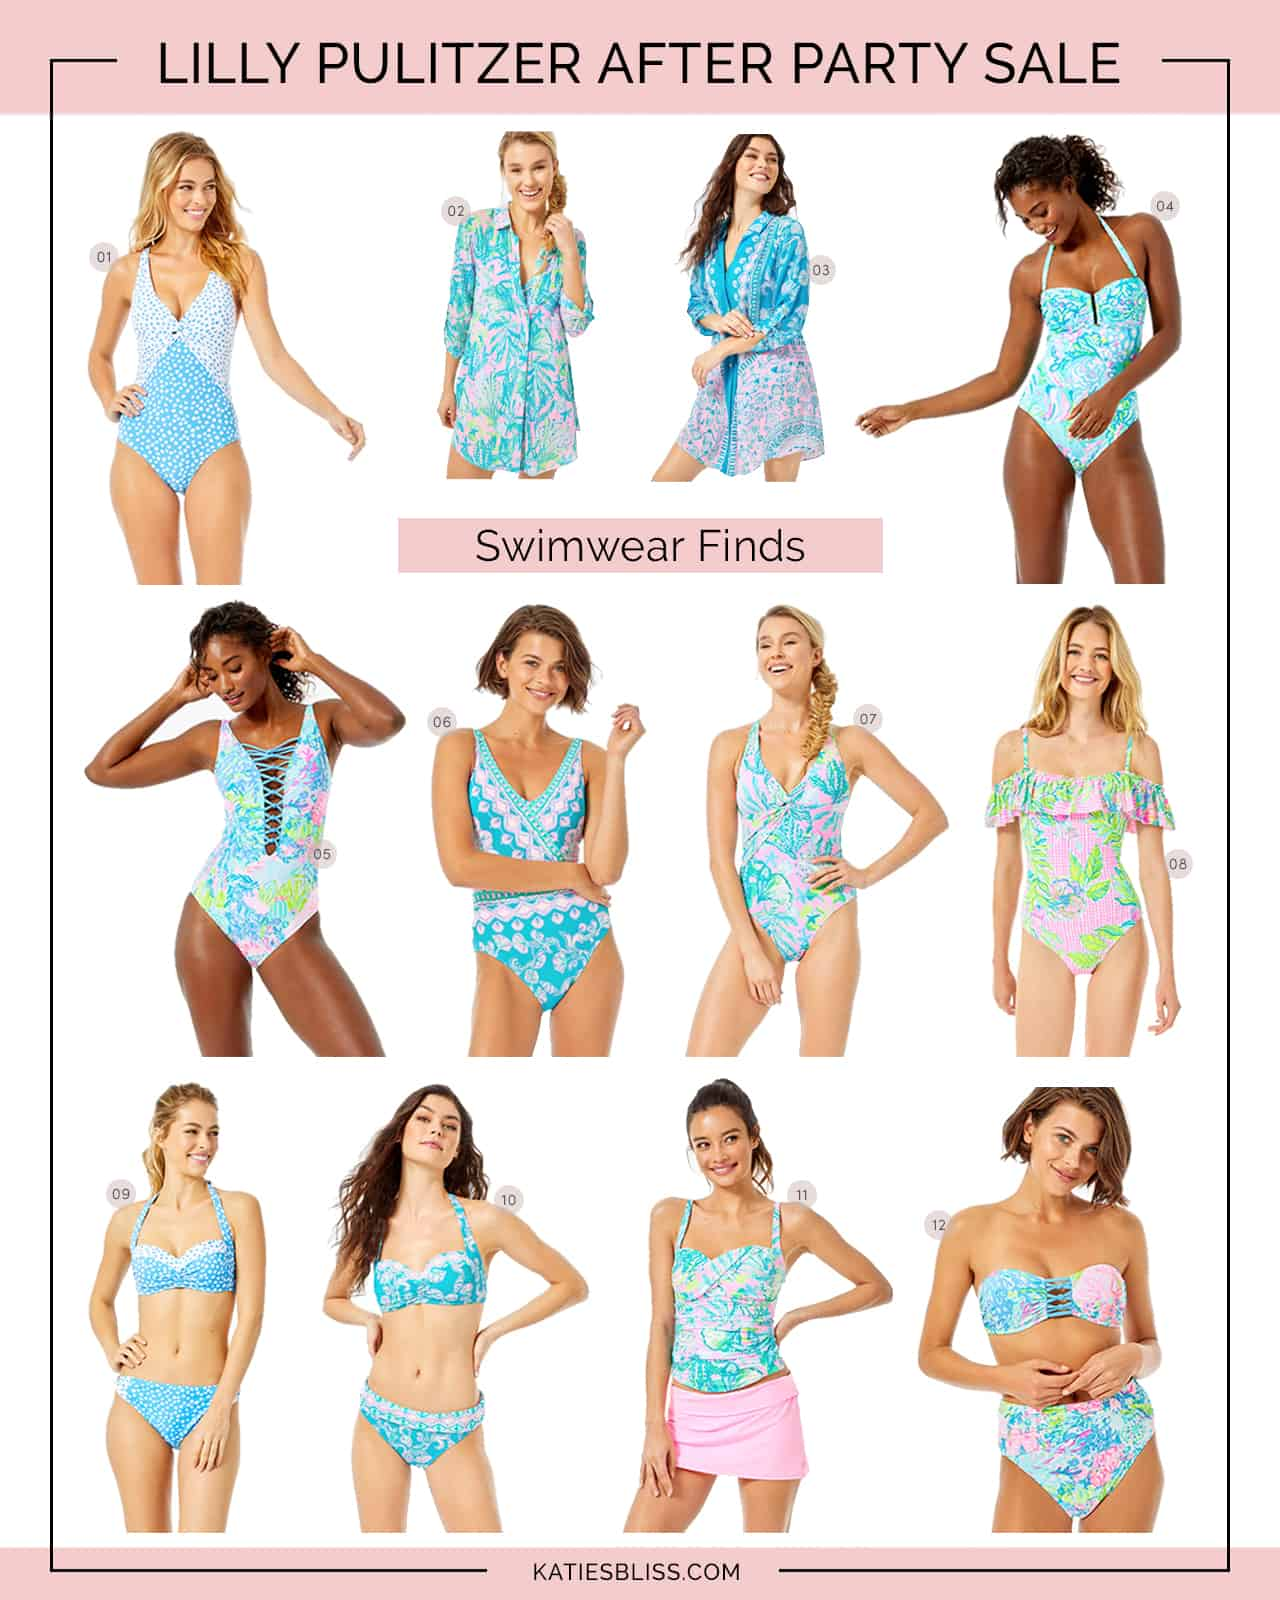 Katies Bliss Lilly Pulitzer After Party Sale Shopping Guide